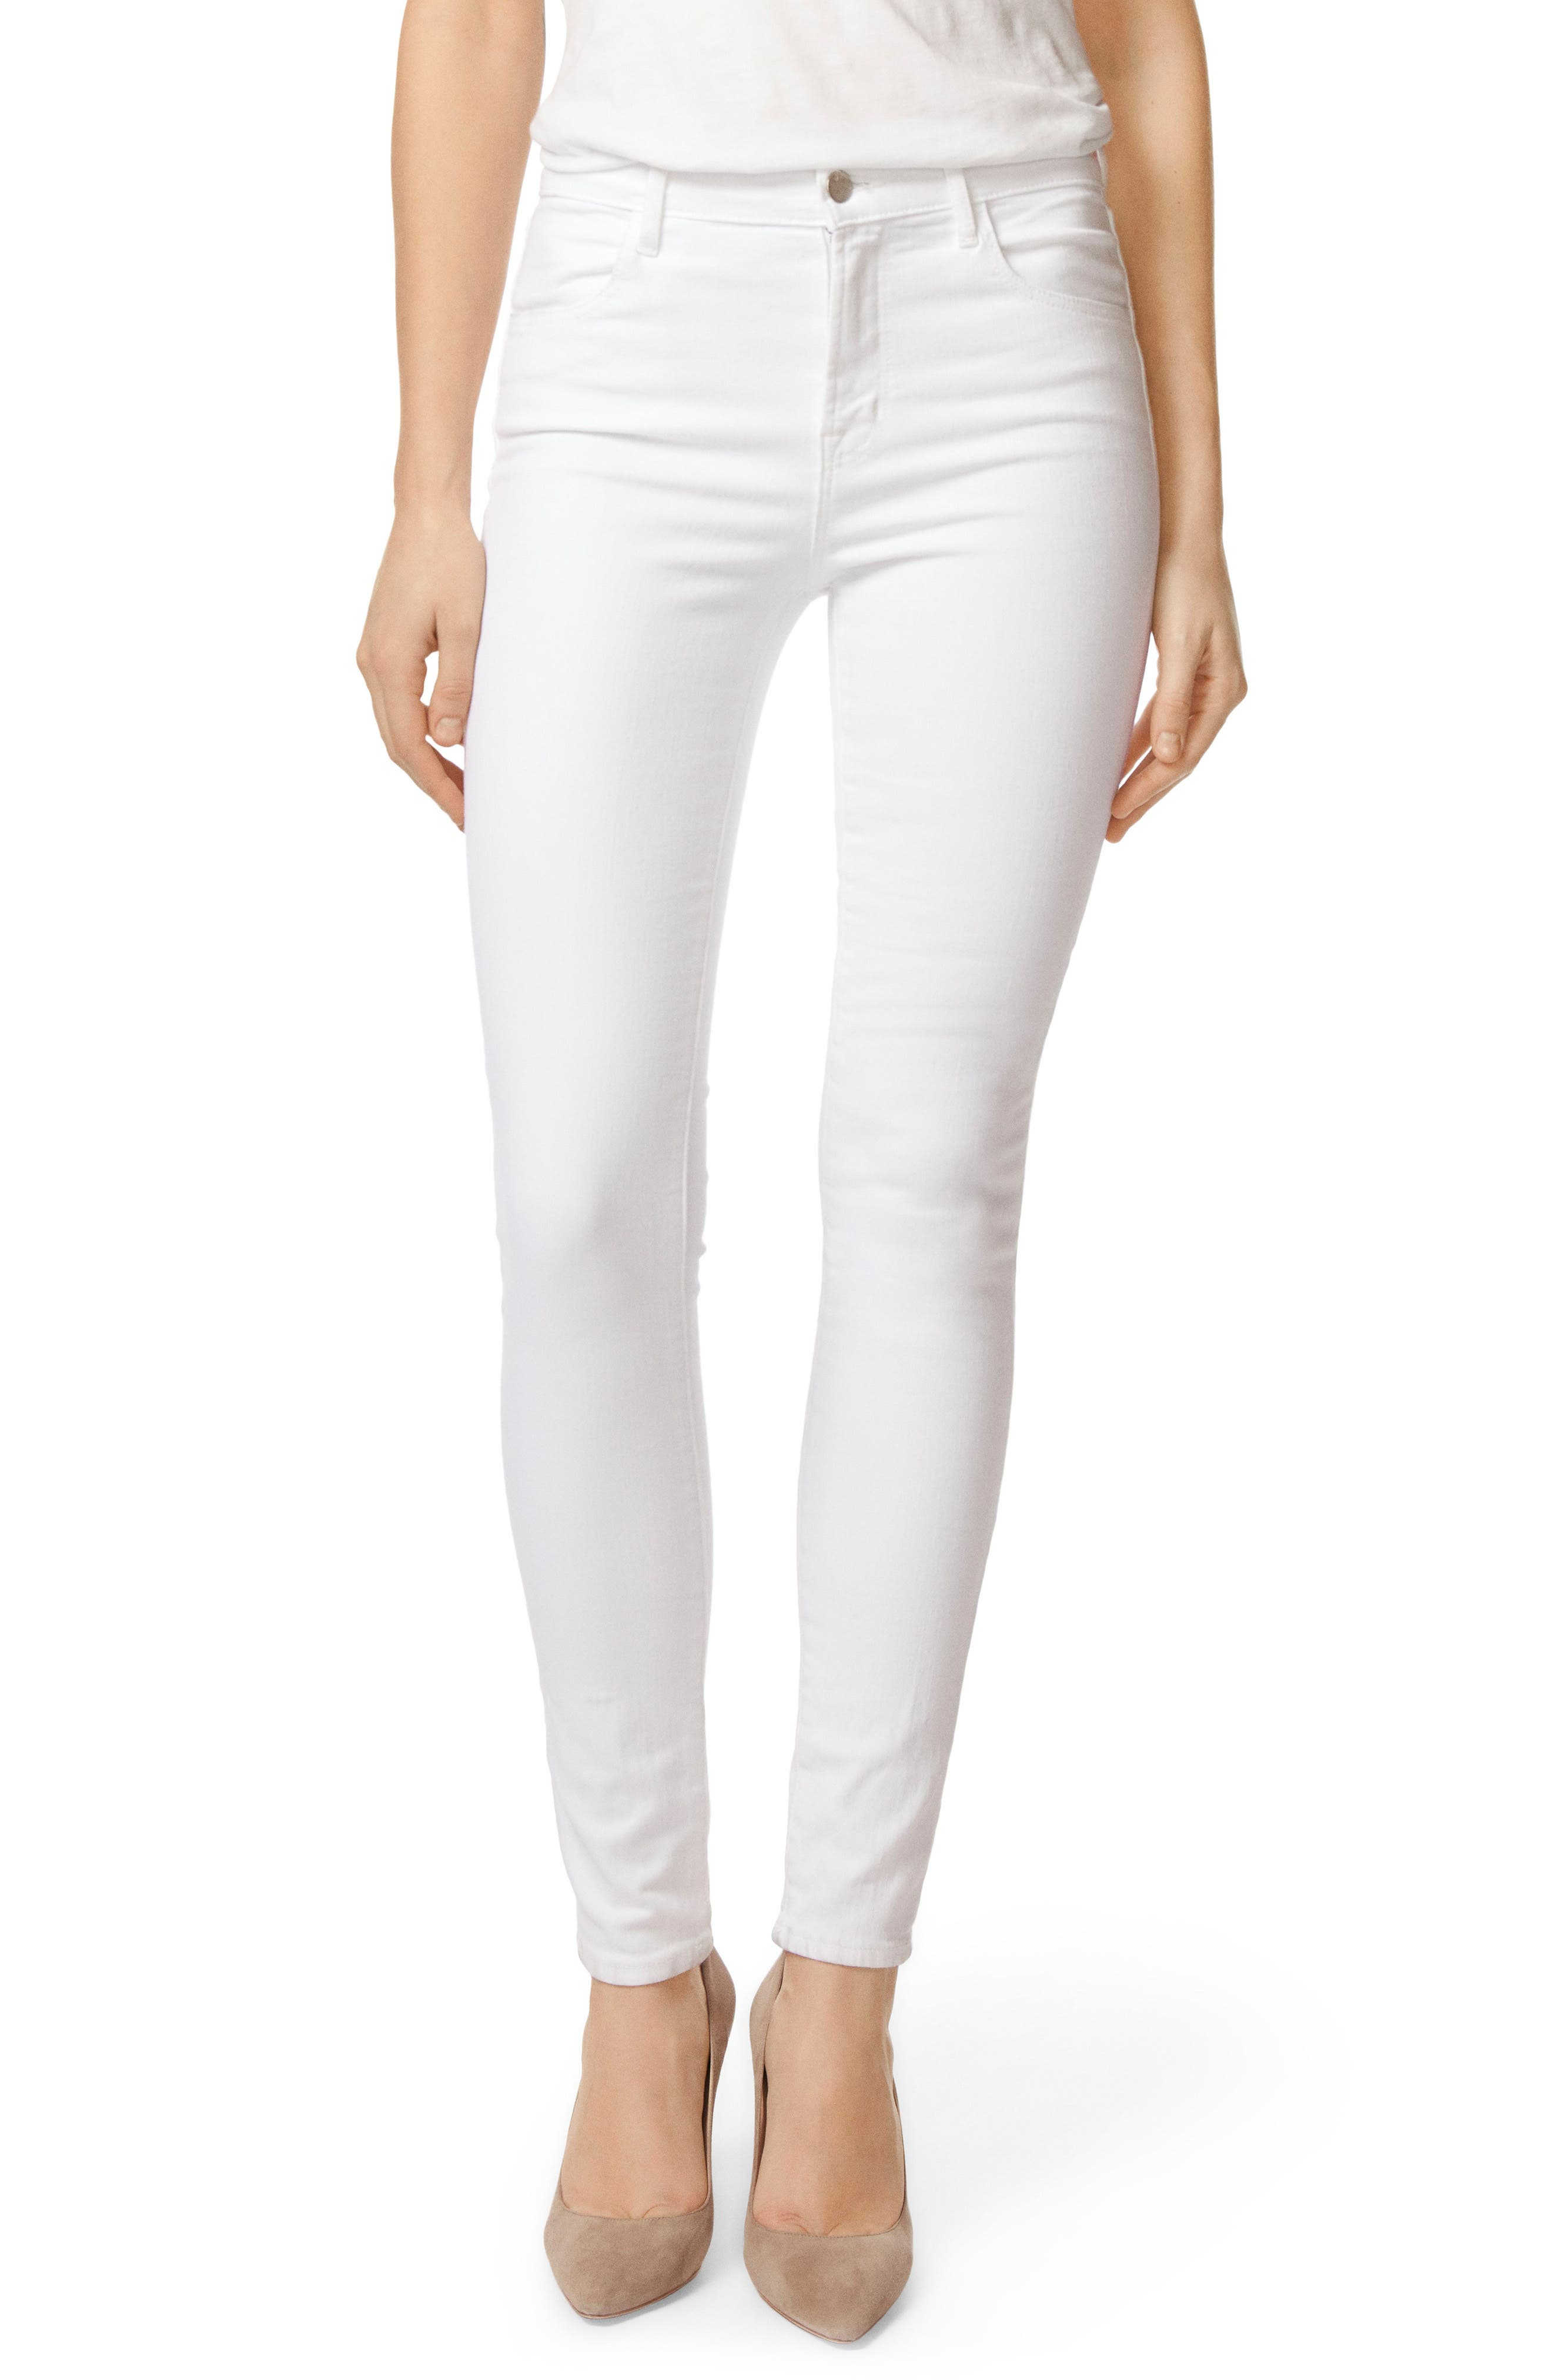 2311 Maria High Waist Super Skinny Jeans,                         Main,                         color, Blanc